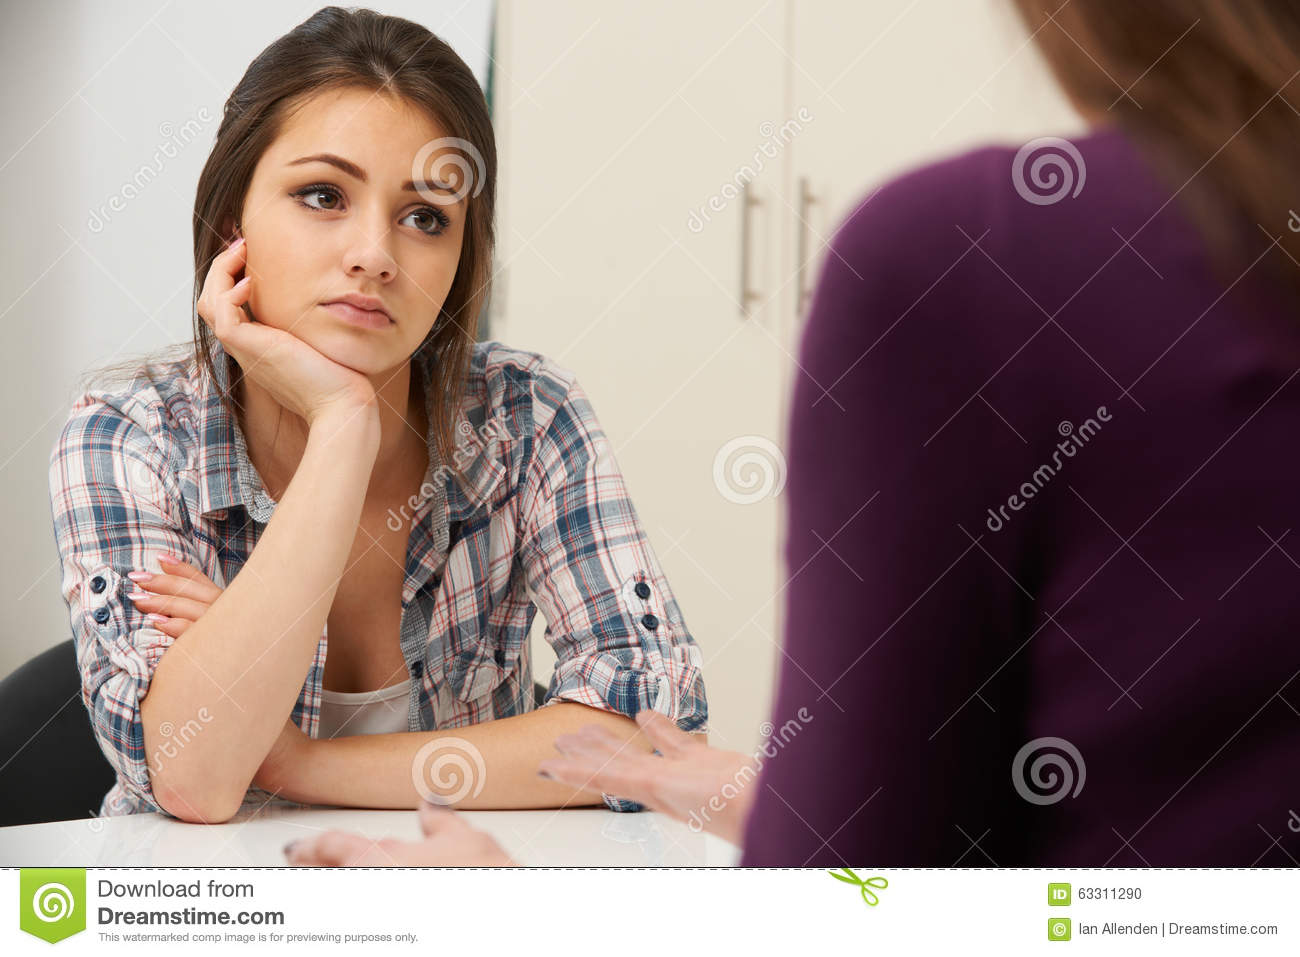 Teenage Girl Suffering From Depression Visiting Counsellor